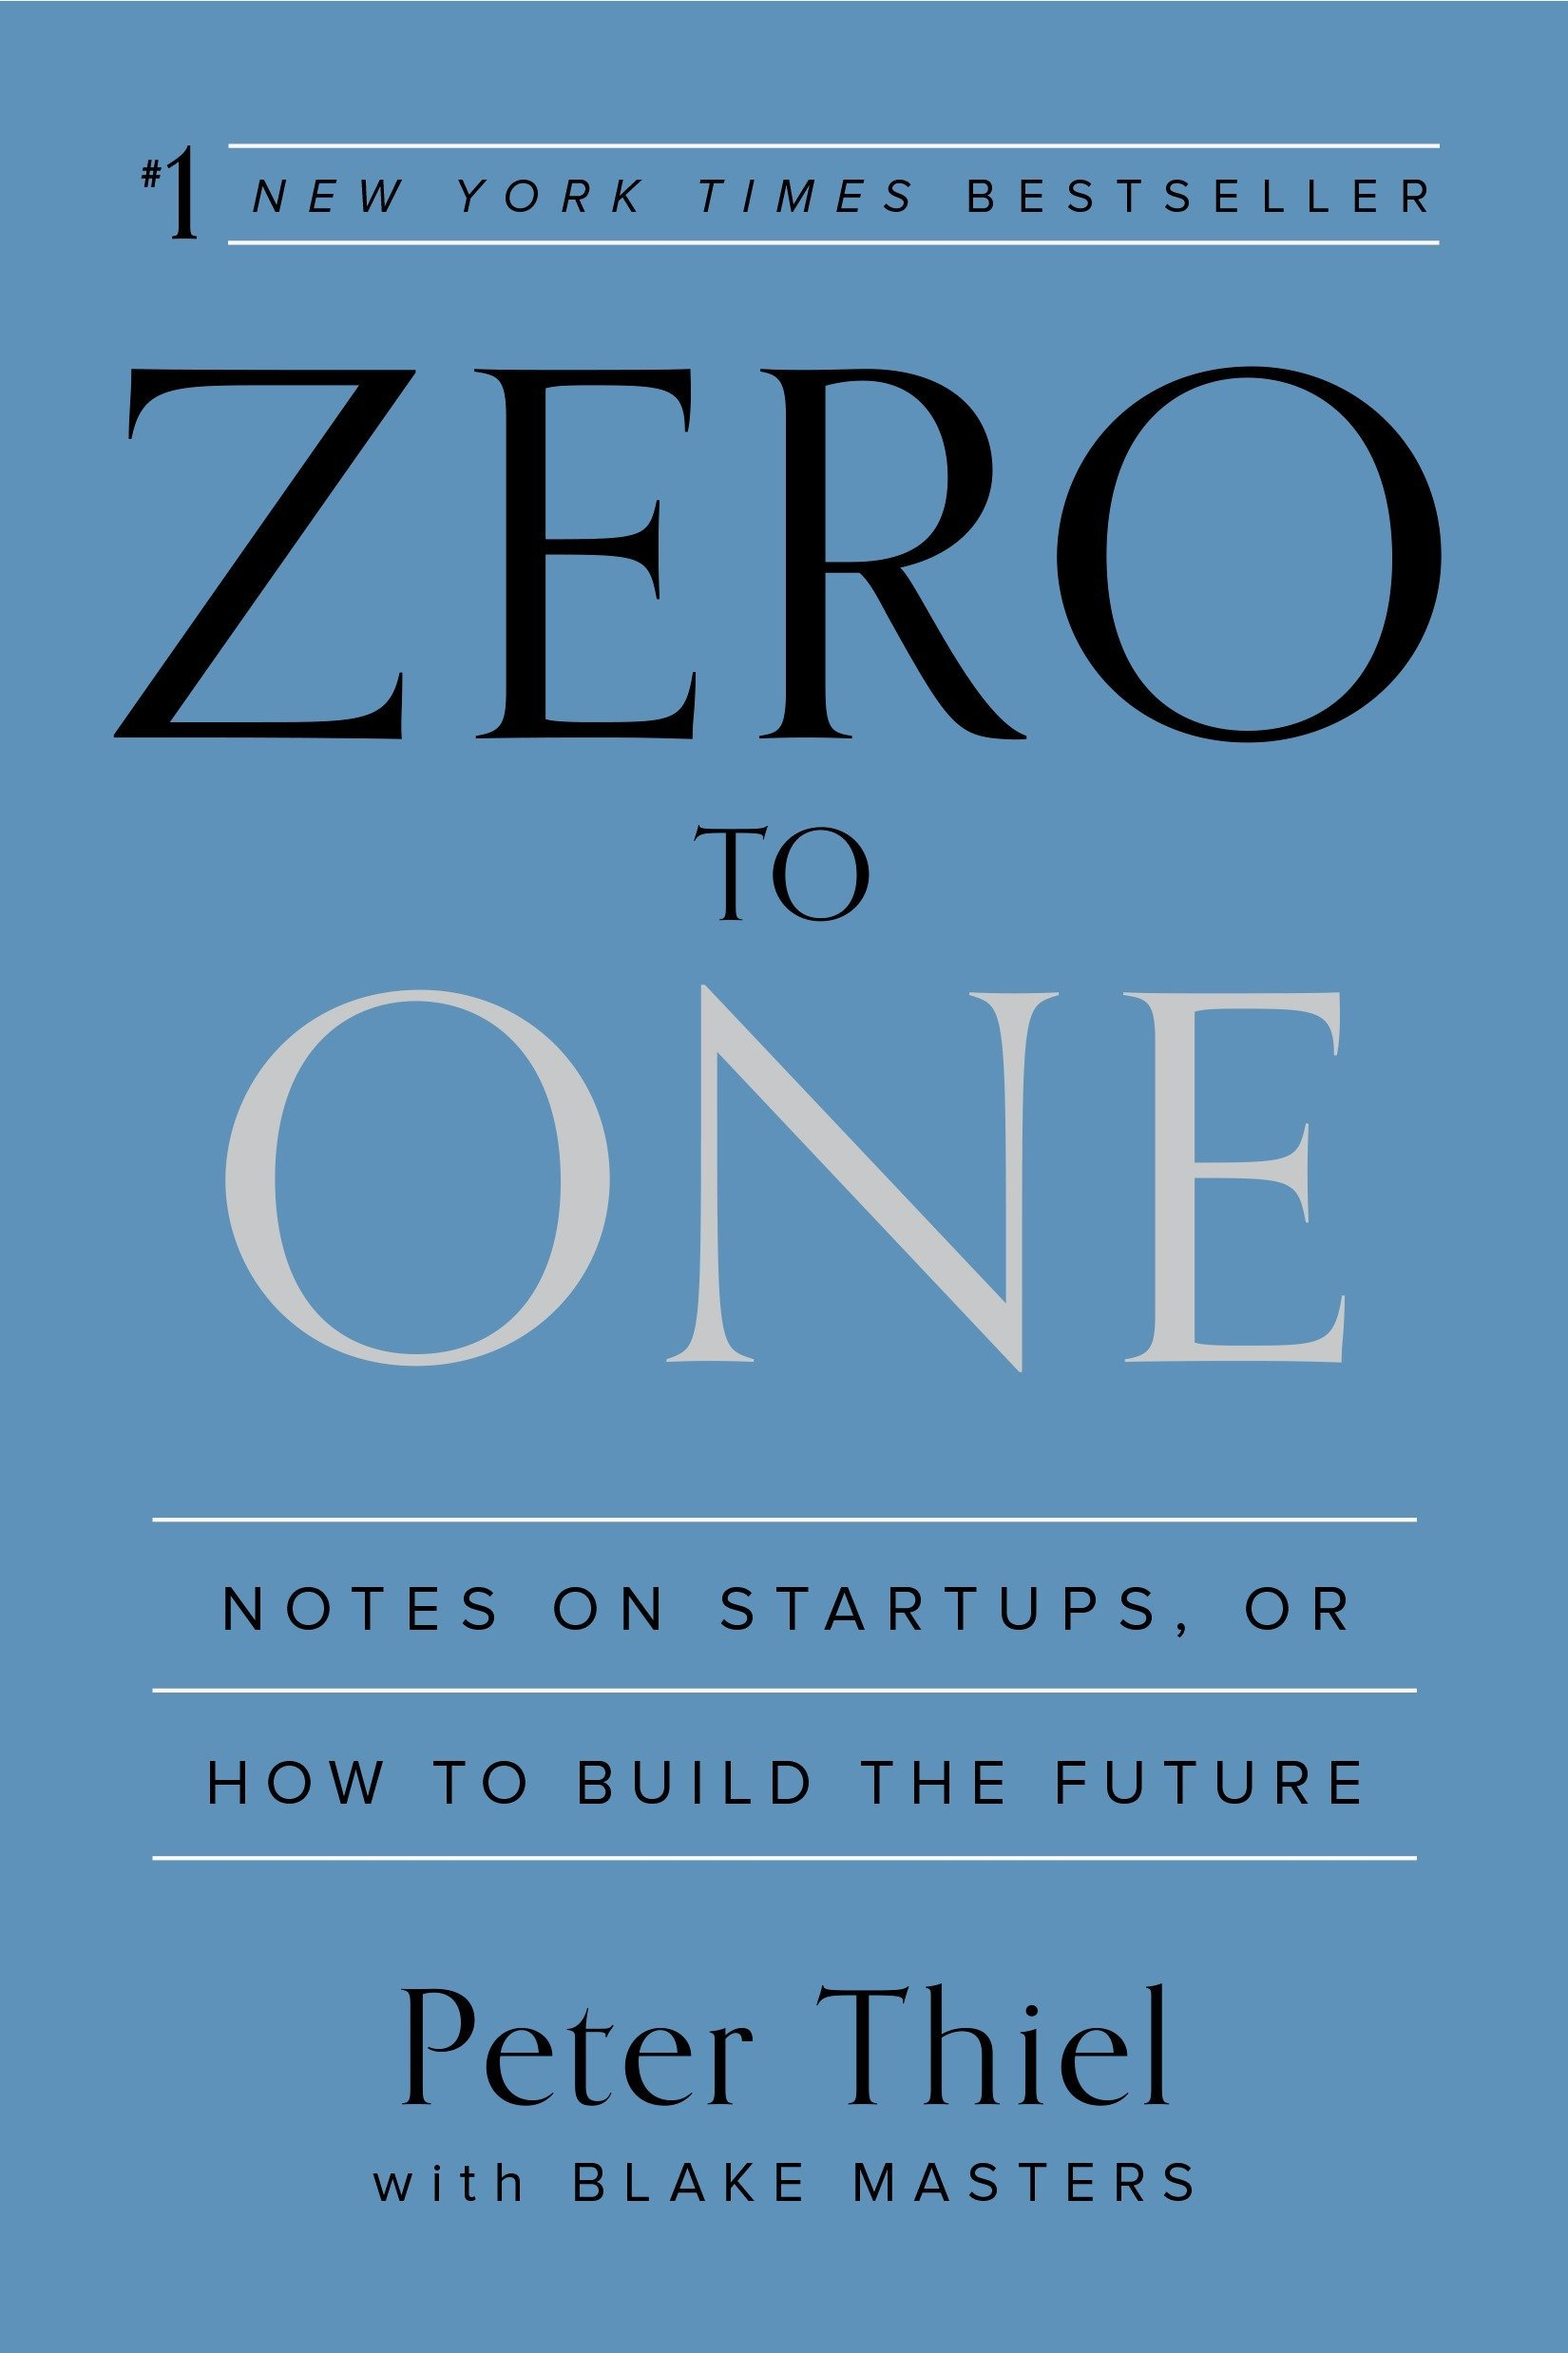 Best Business Books: Zero to One